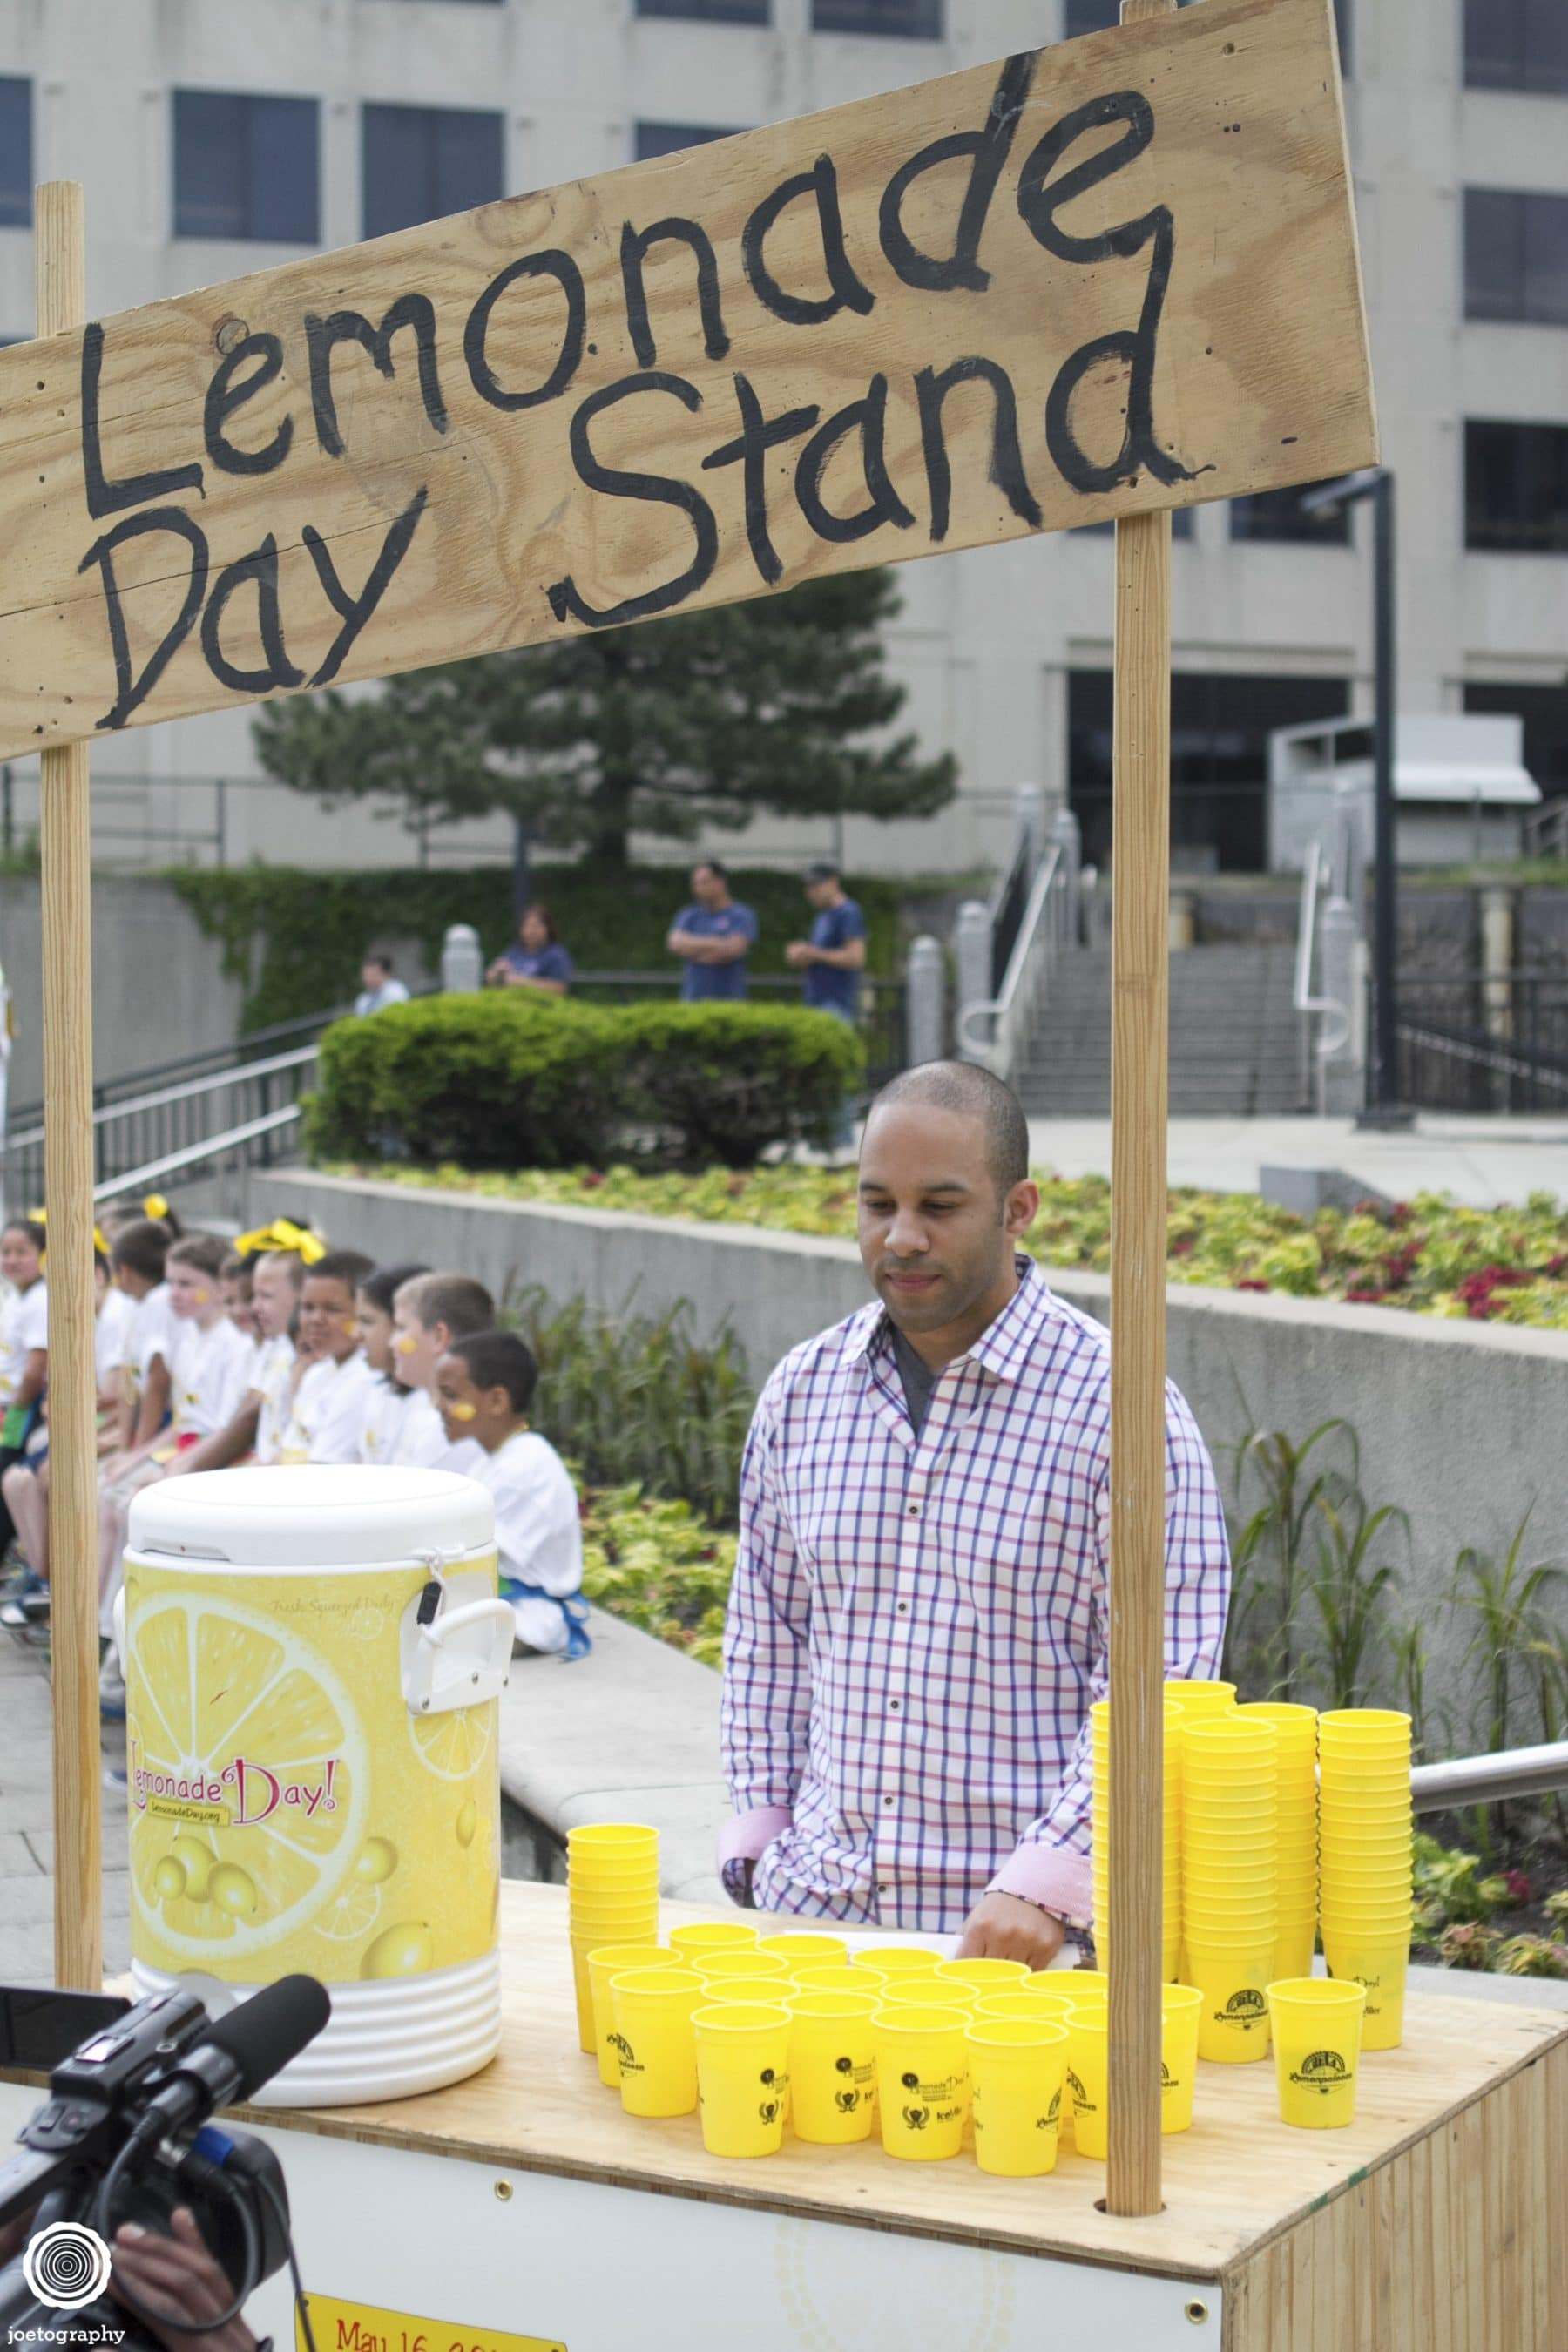 lemonade-day-2015-canal-coloring-event-photography-indianapolis-1